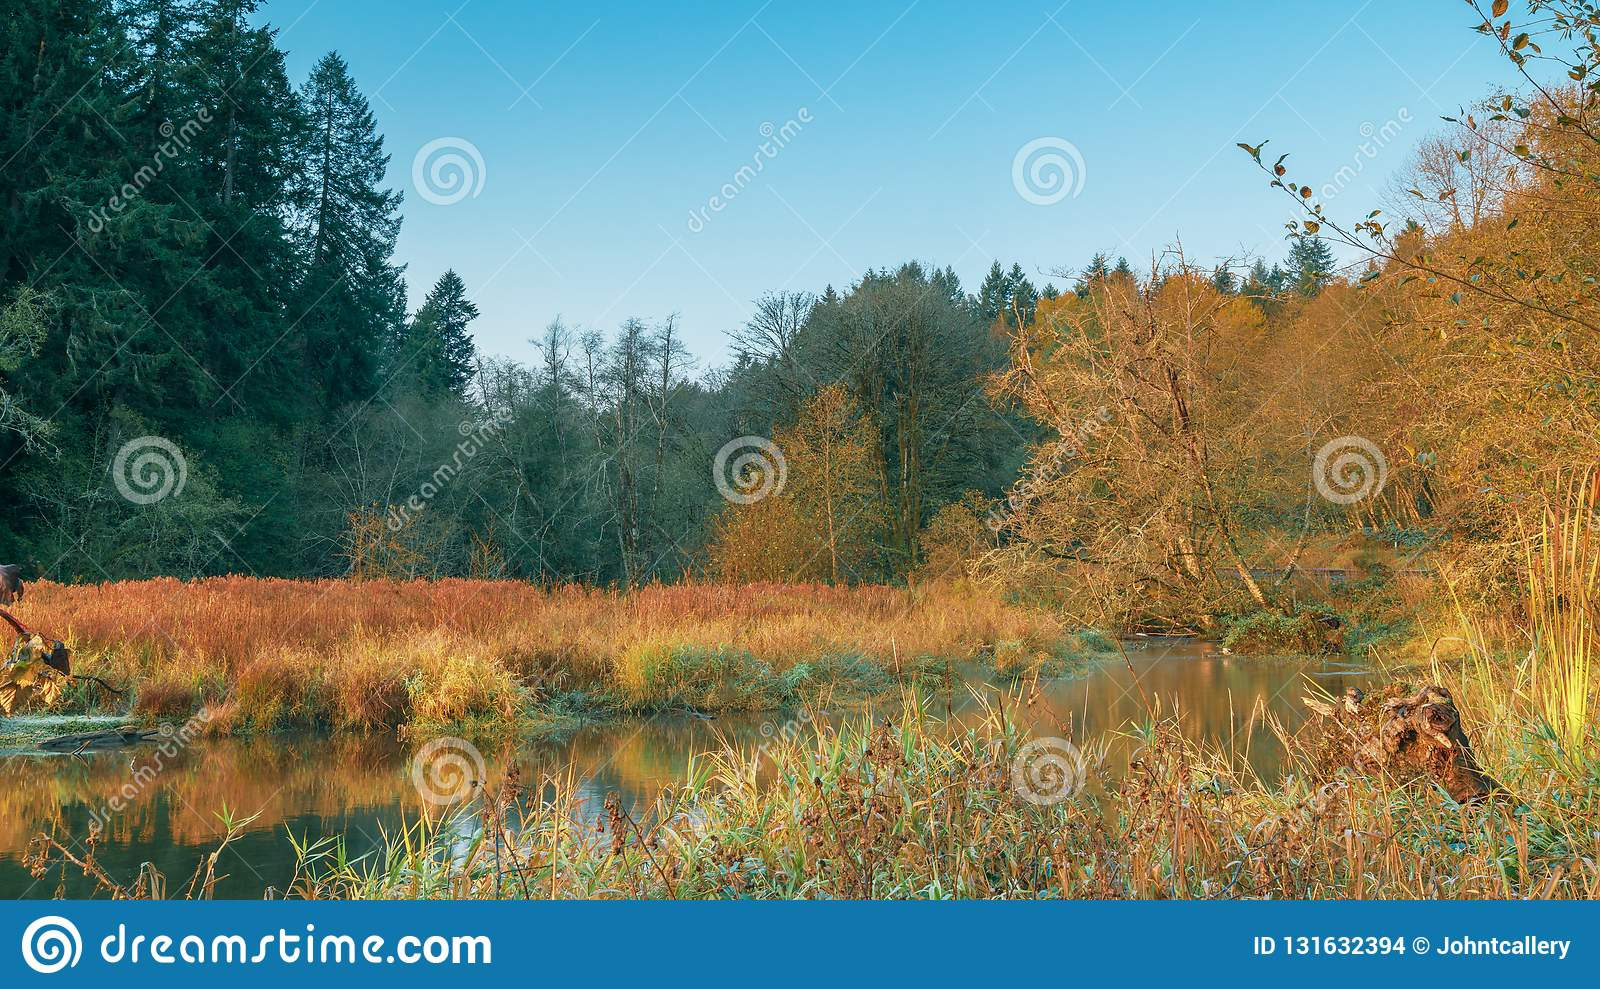 Autumn Morning with Fall Colors and Blue Skies